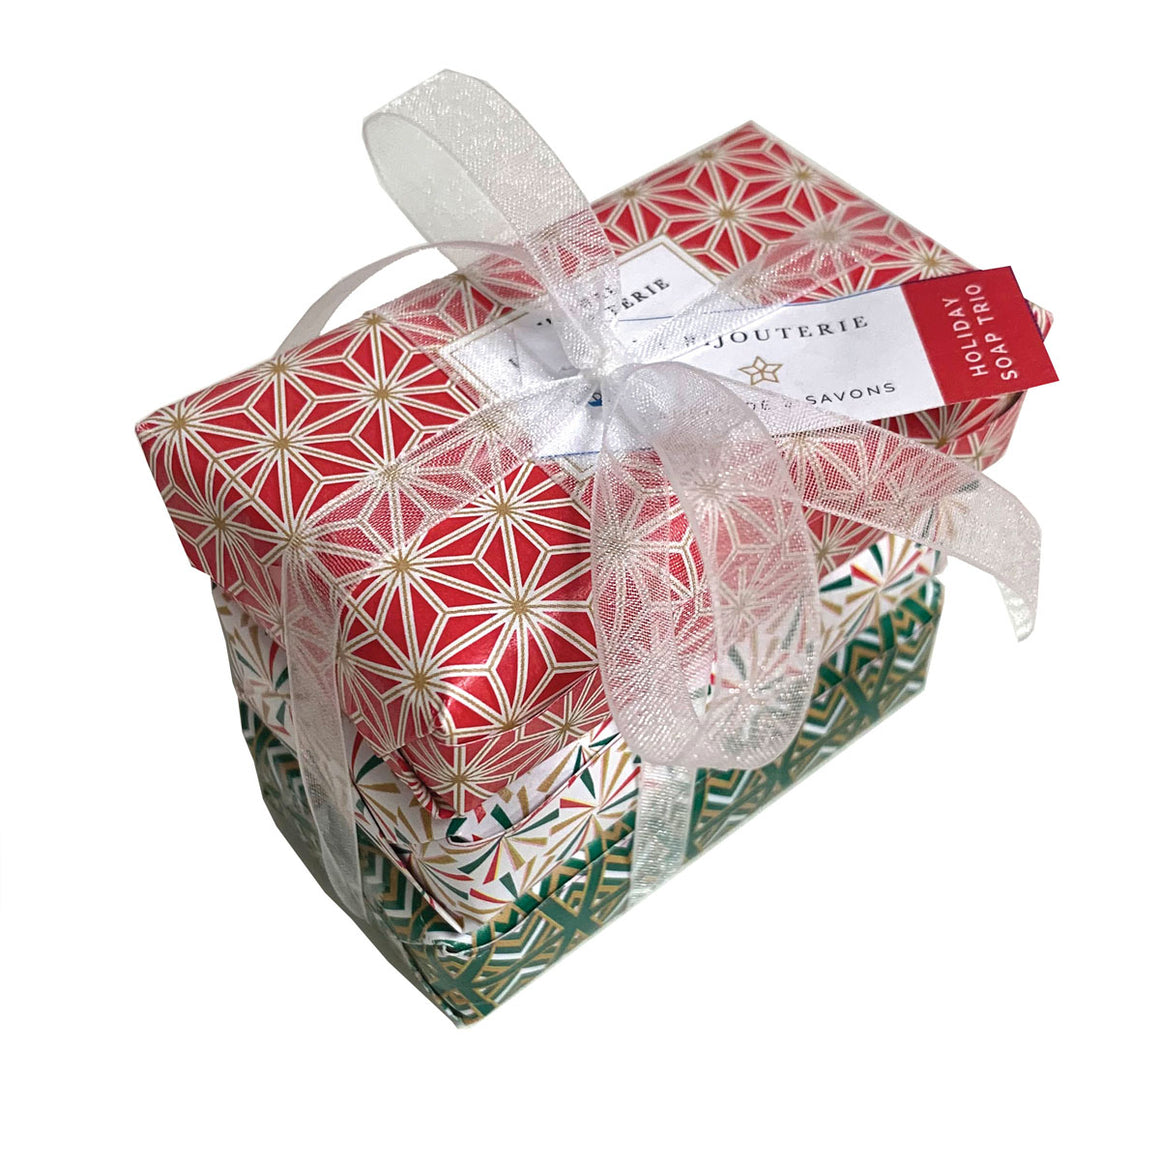 Jewels Holiday 3 Soap Gift Set